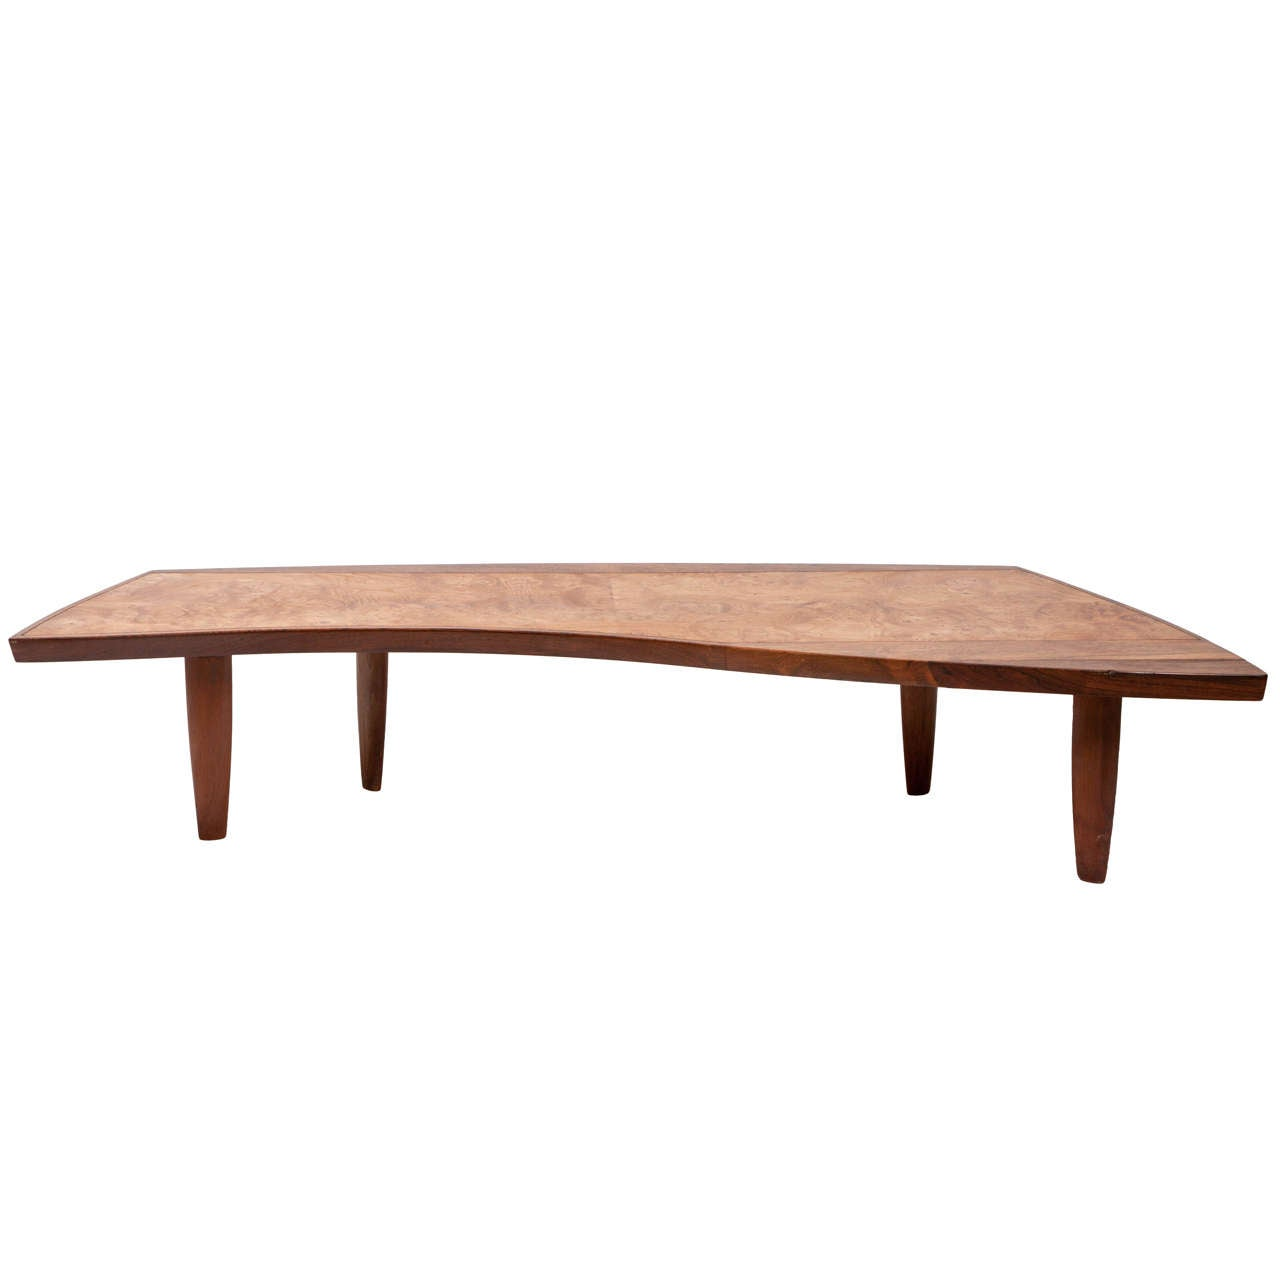 Large Coffee Table By George Nakashima For Widdicomb At 1stdibs